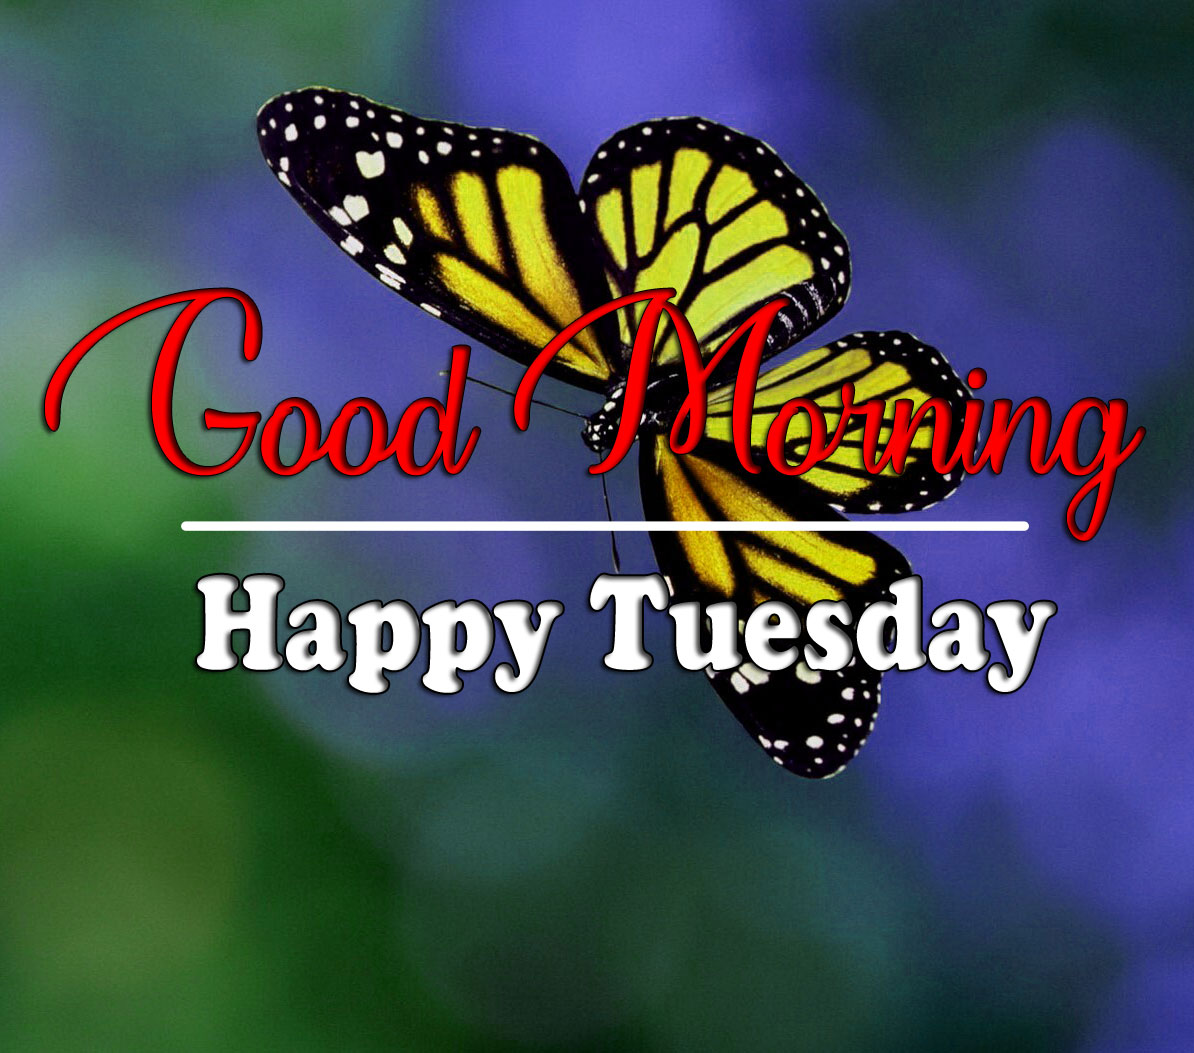 Tuesday Good morning Wallpaper Latest 2021